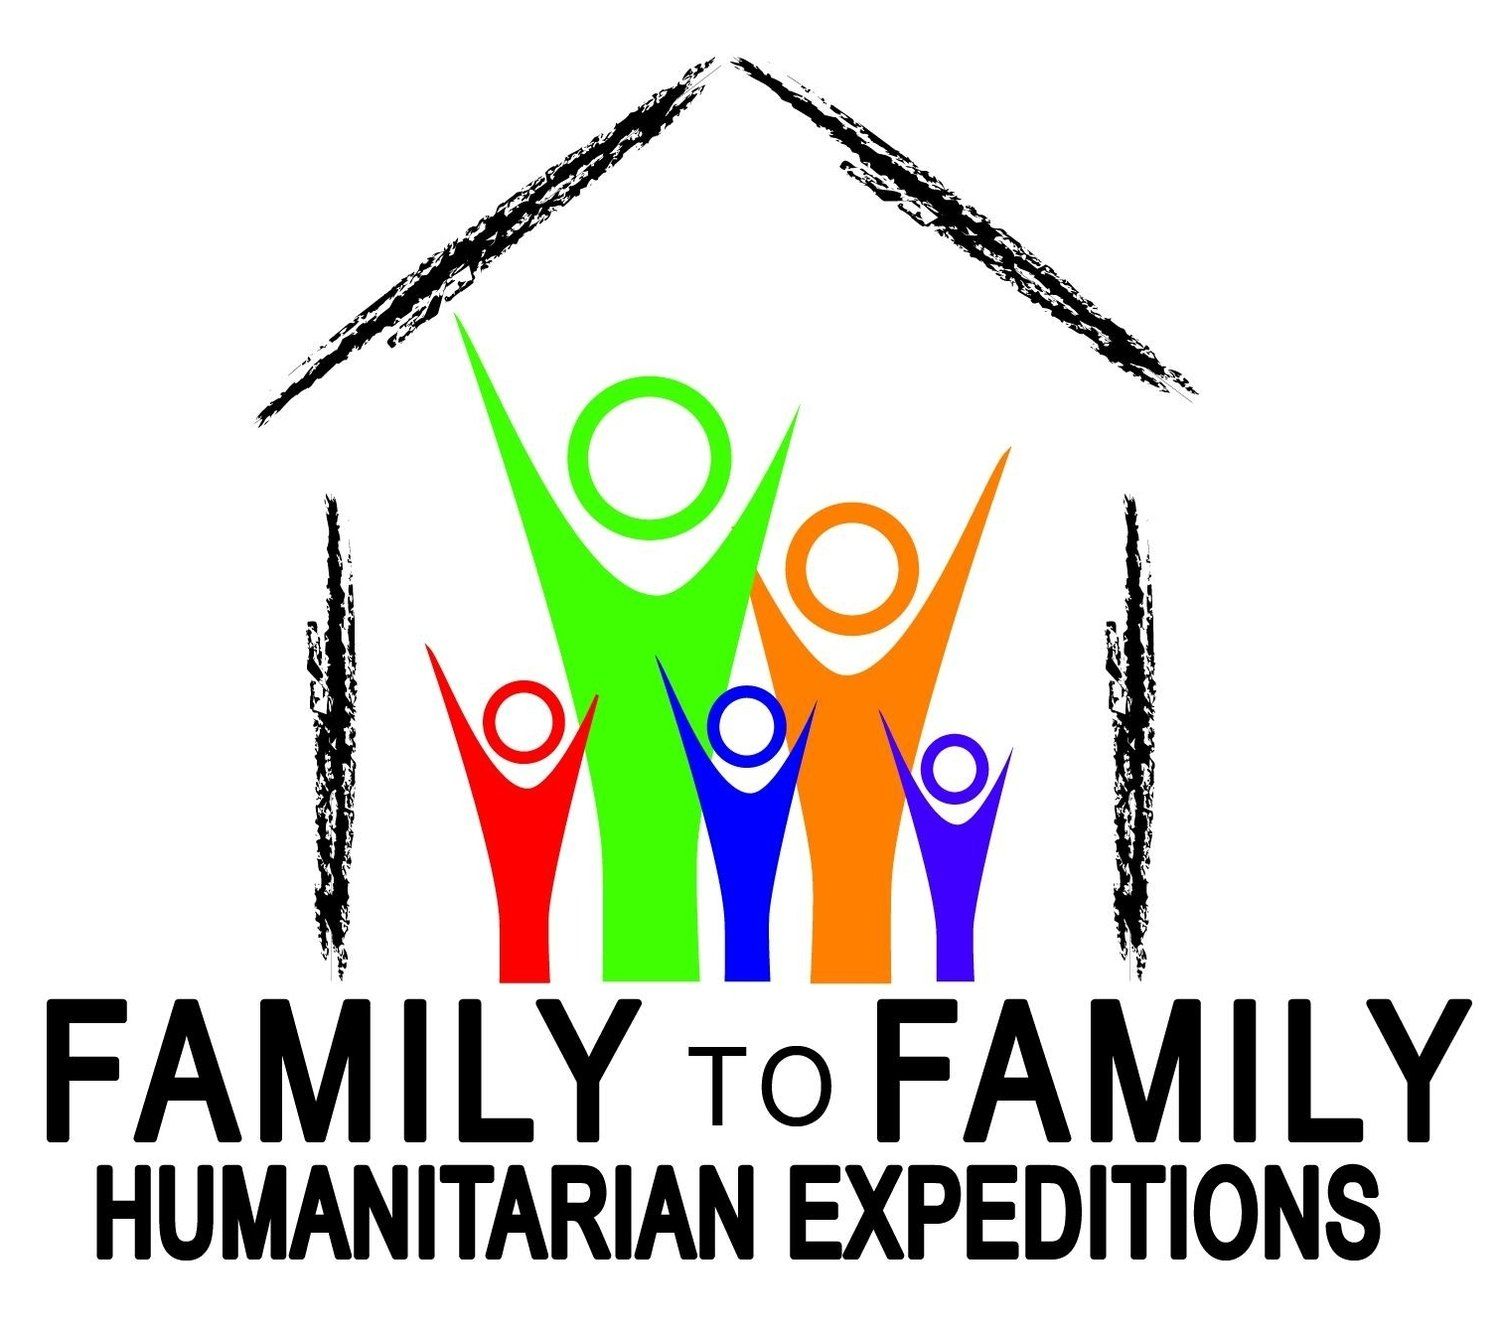 Family to Family Humanitarian Expeditions